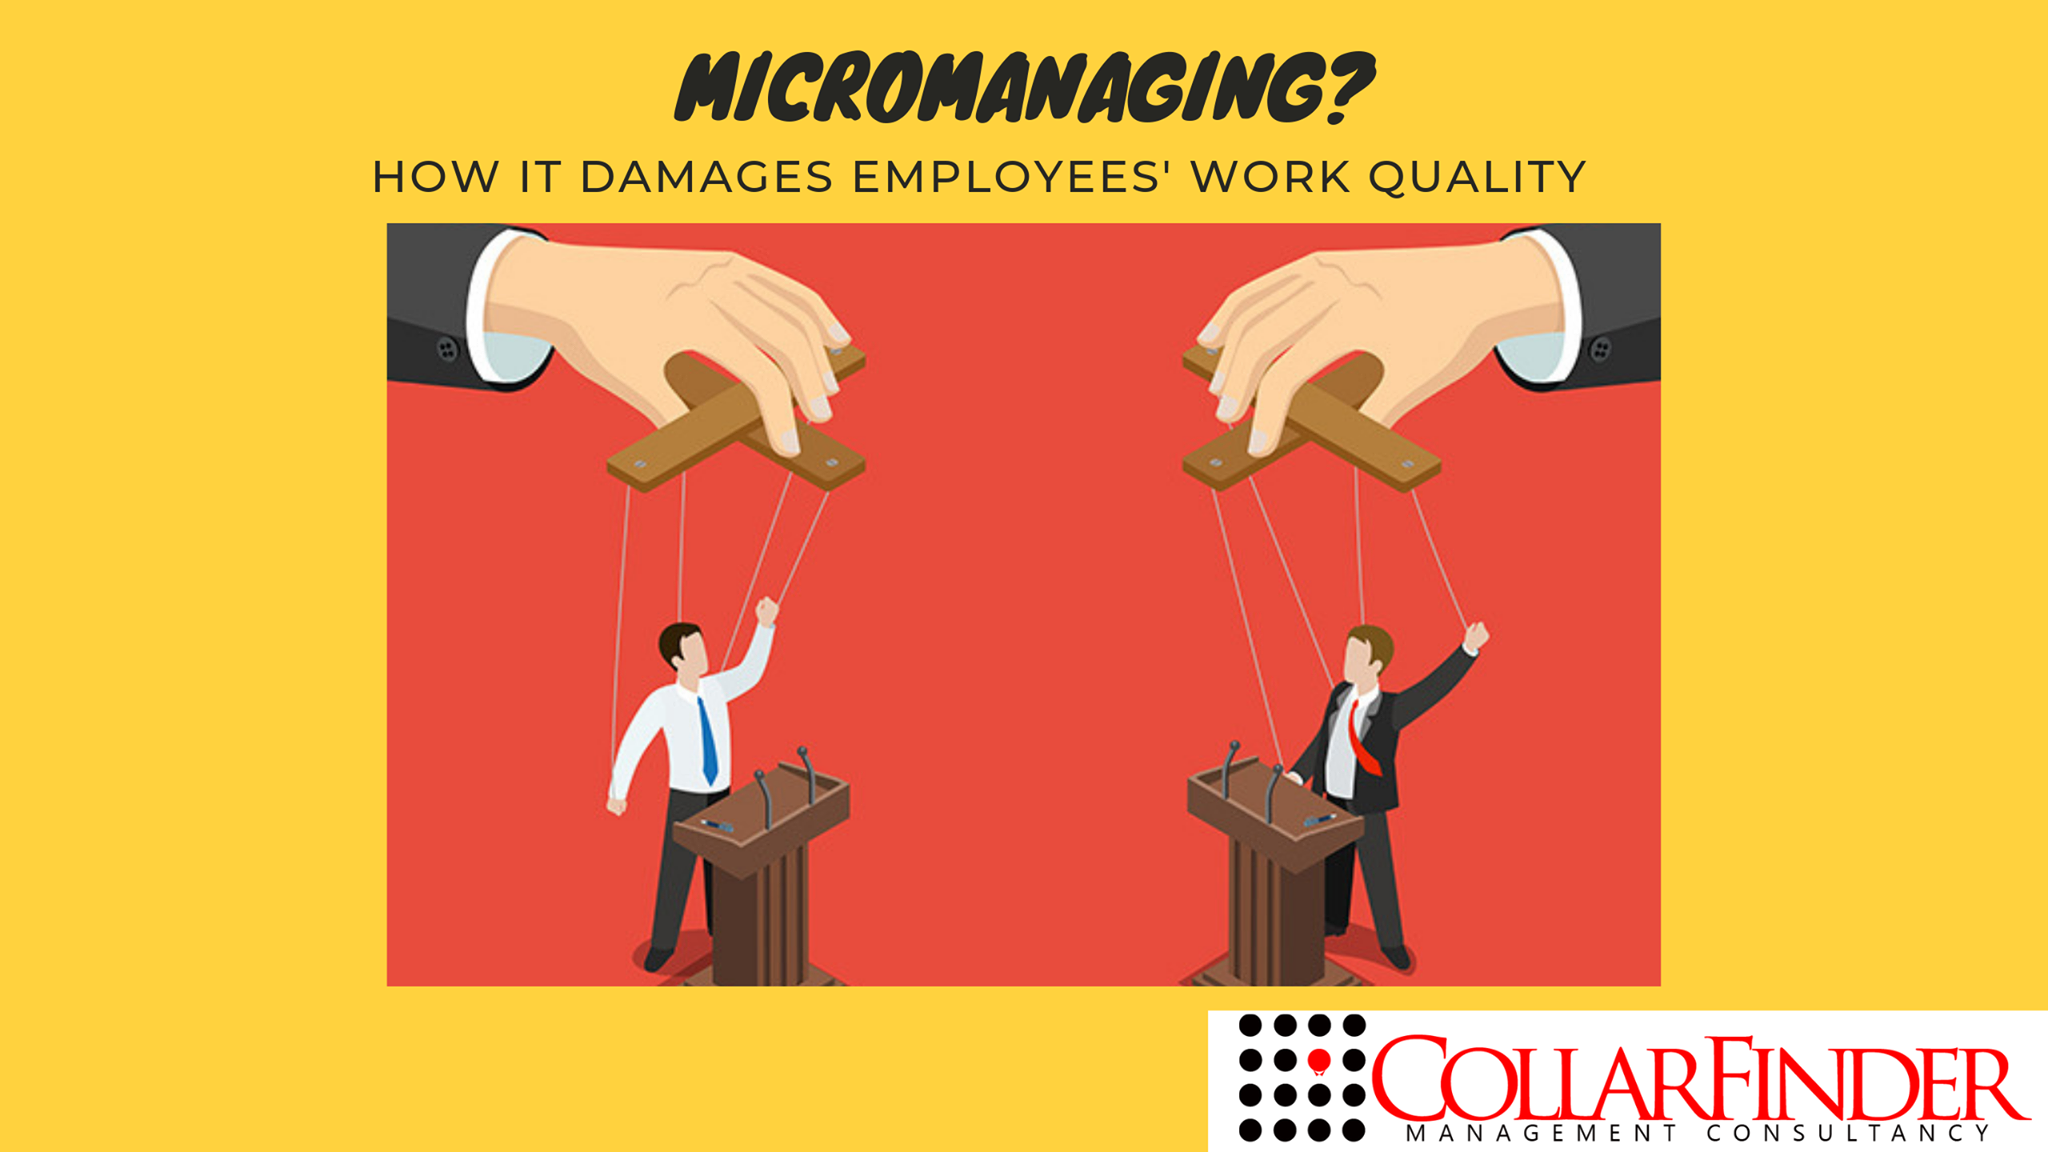 Micromanaging: How It Damages Employees' Work Quality